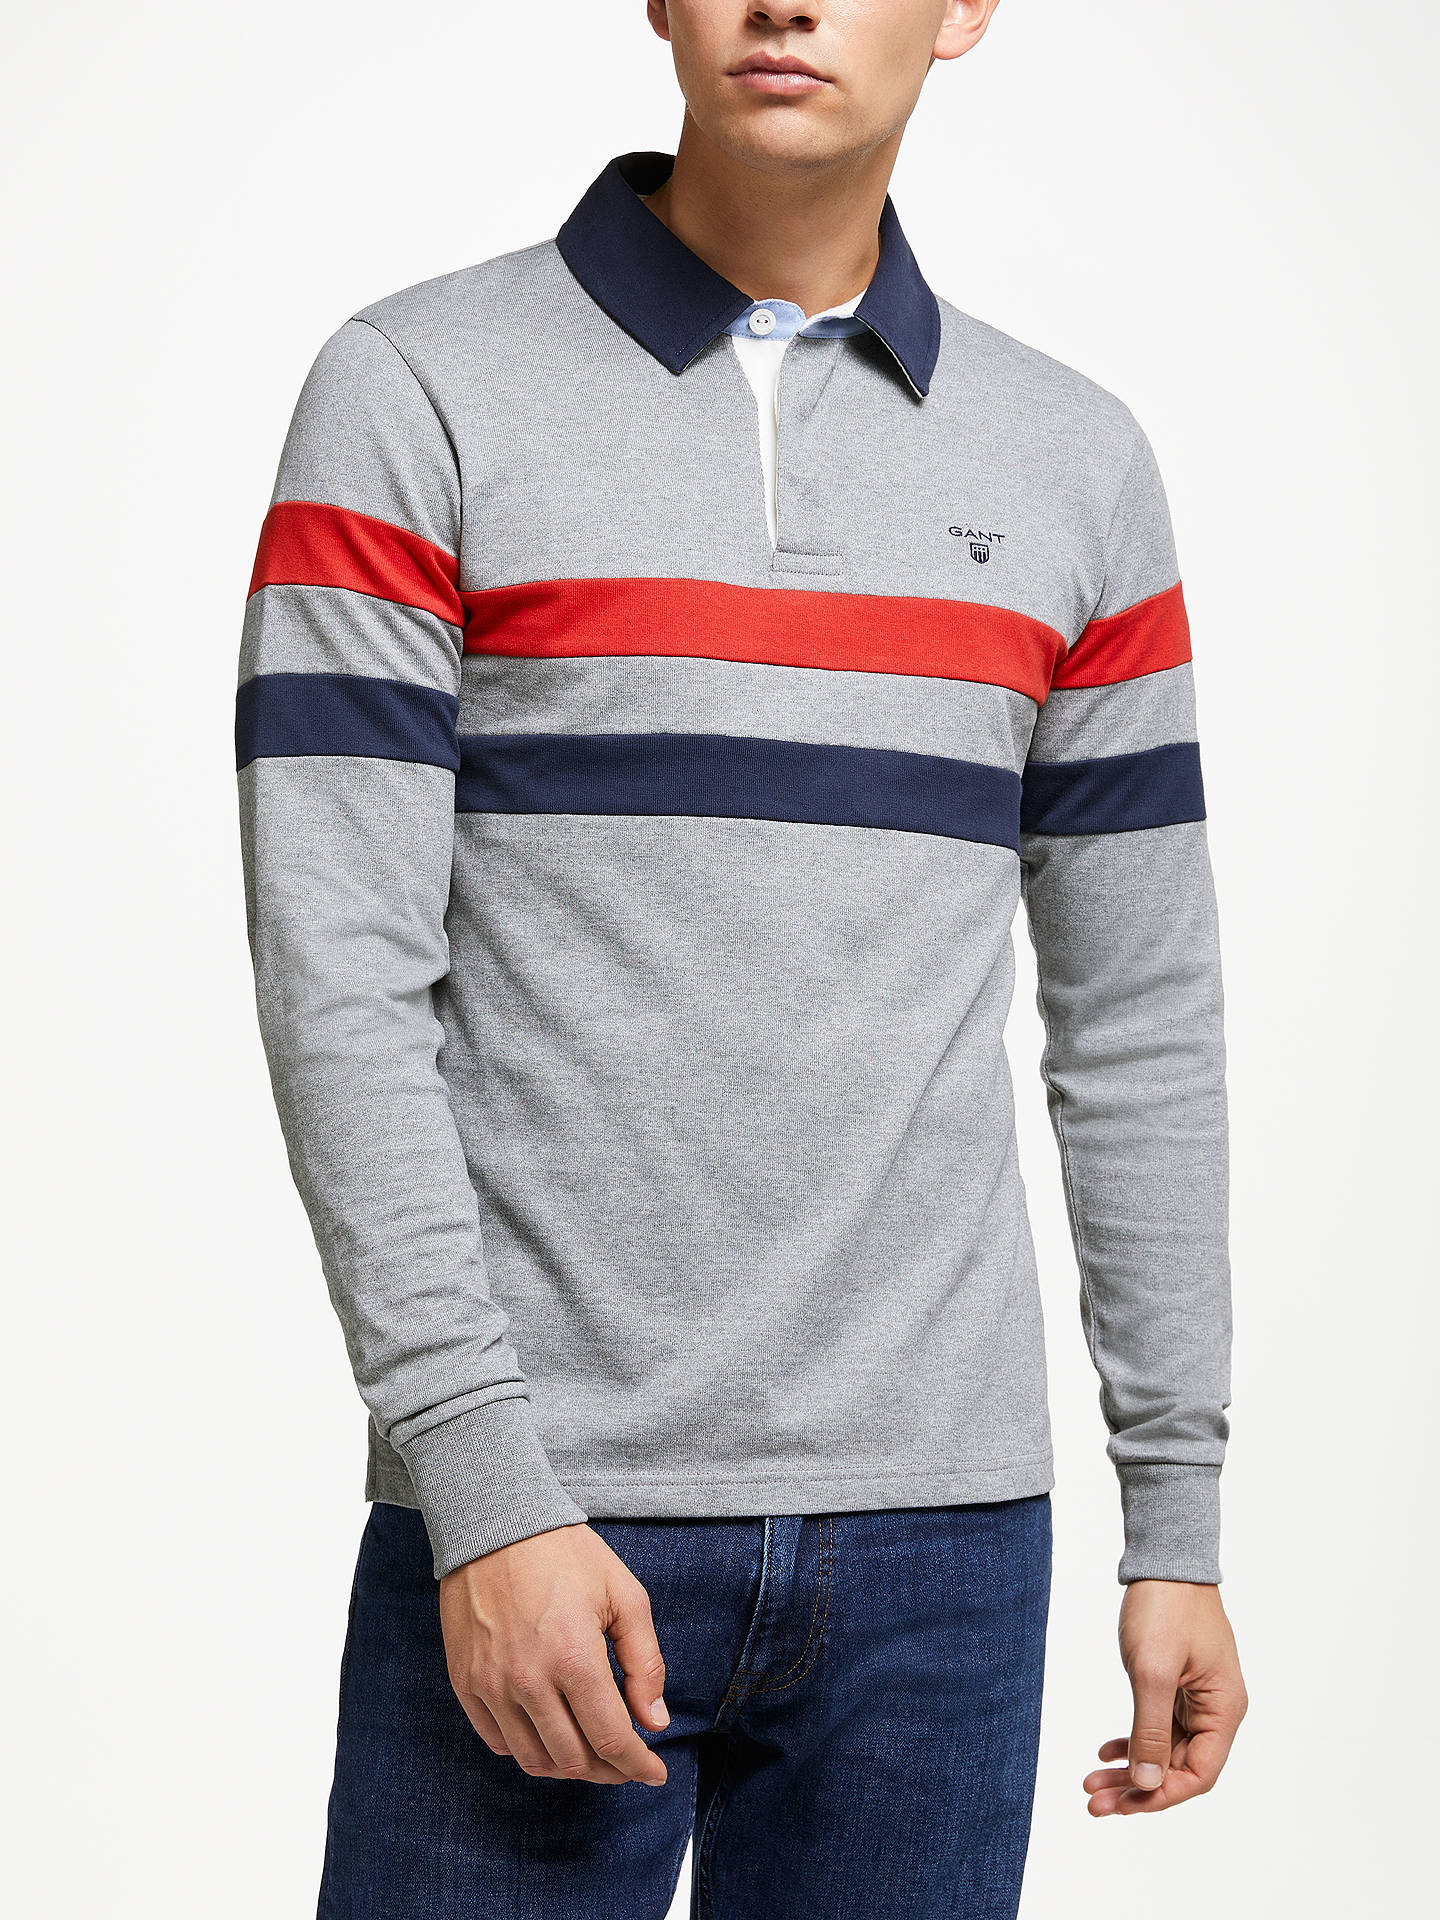 Helpful Gant Xl Rugby Top Shirts & Tops